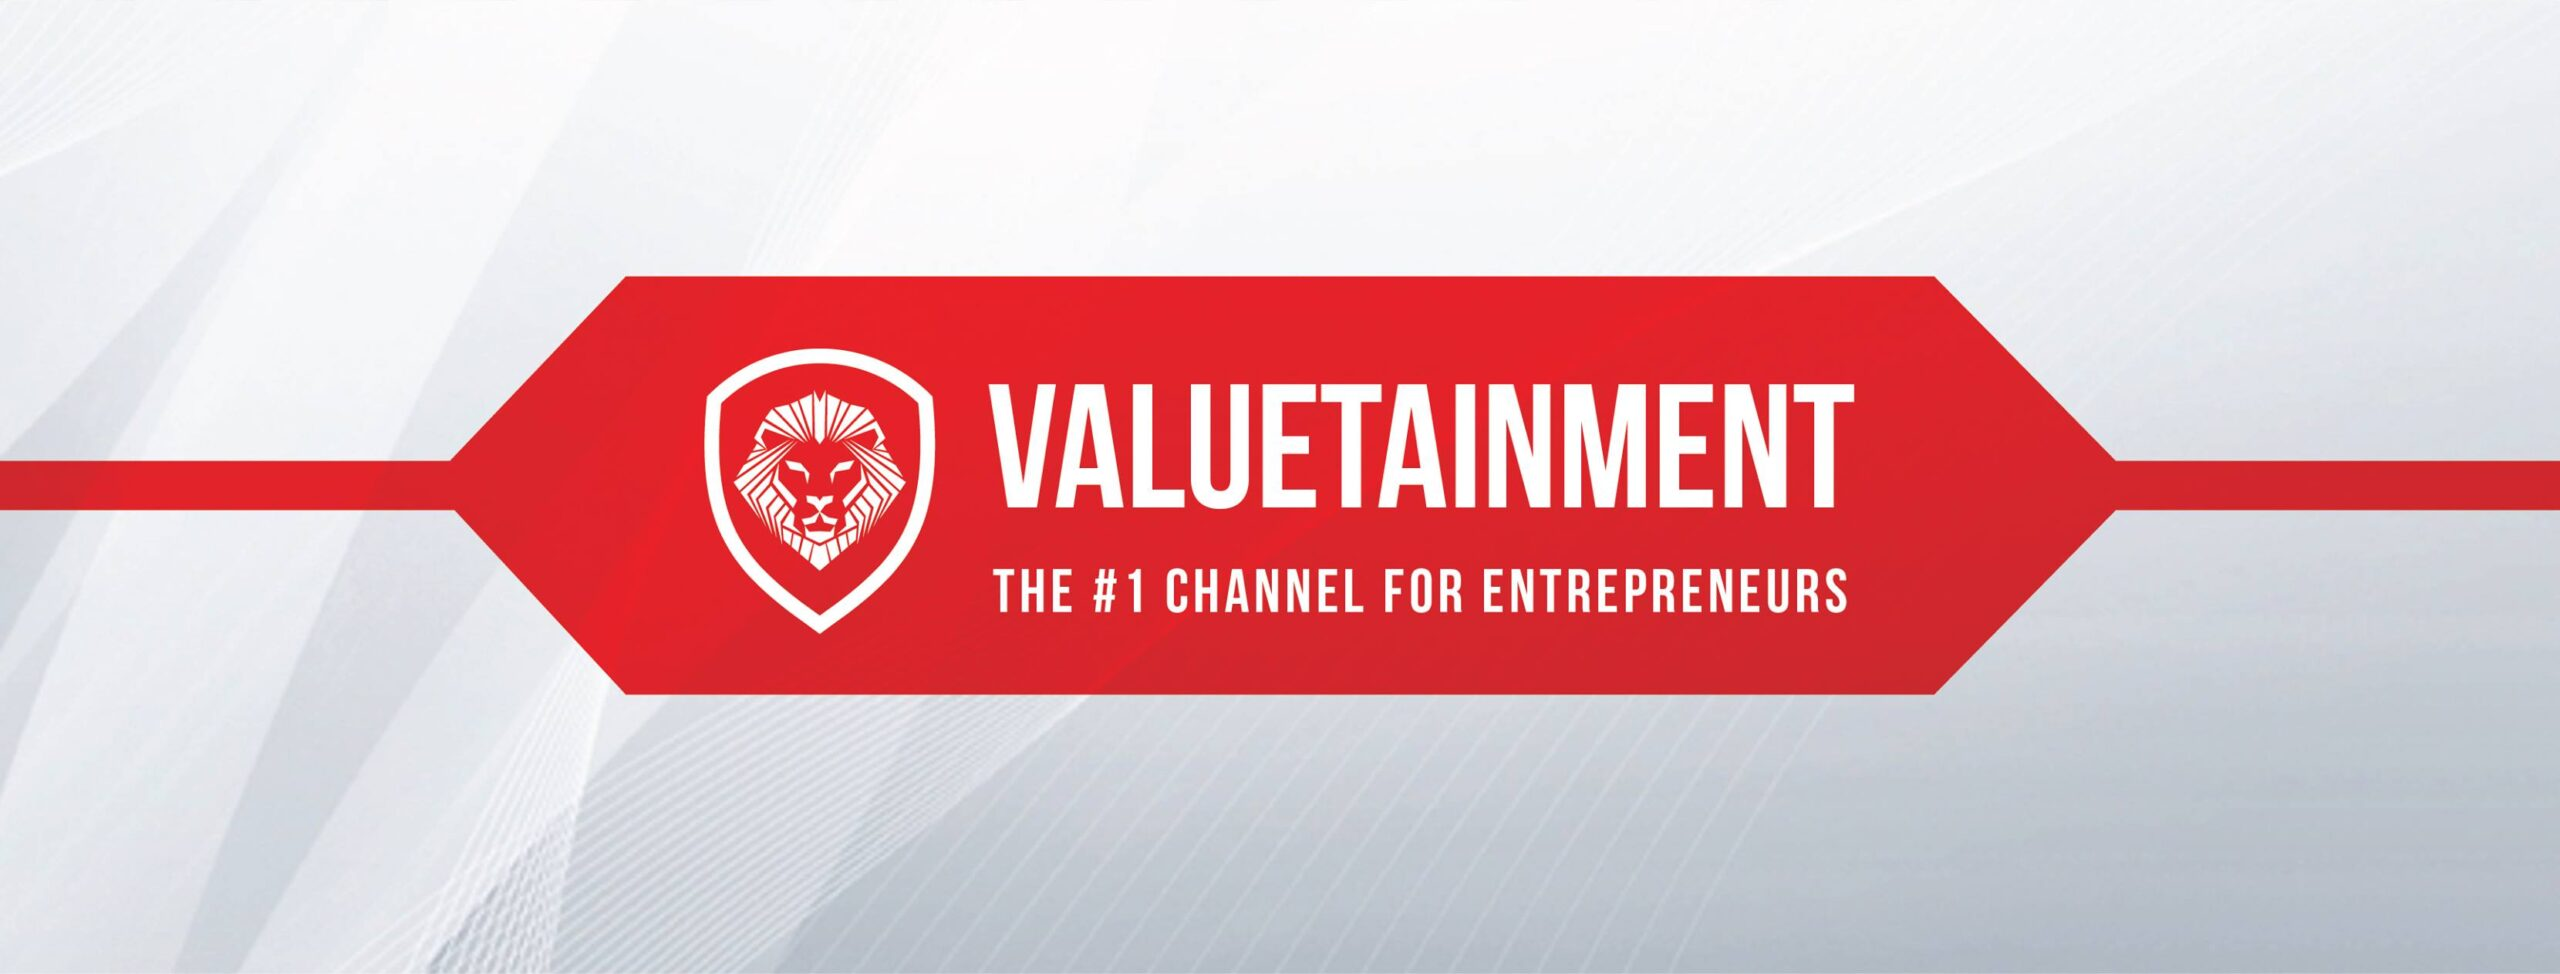 Valuetainment Banner